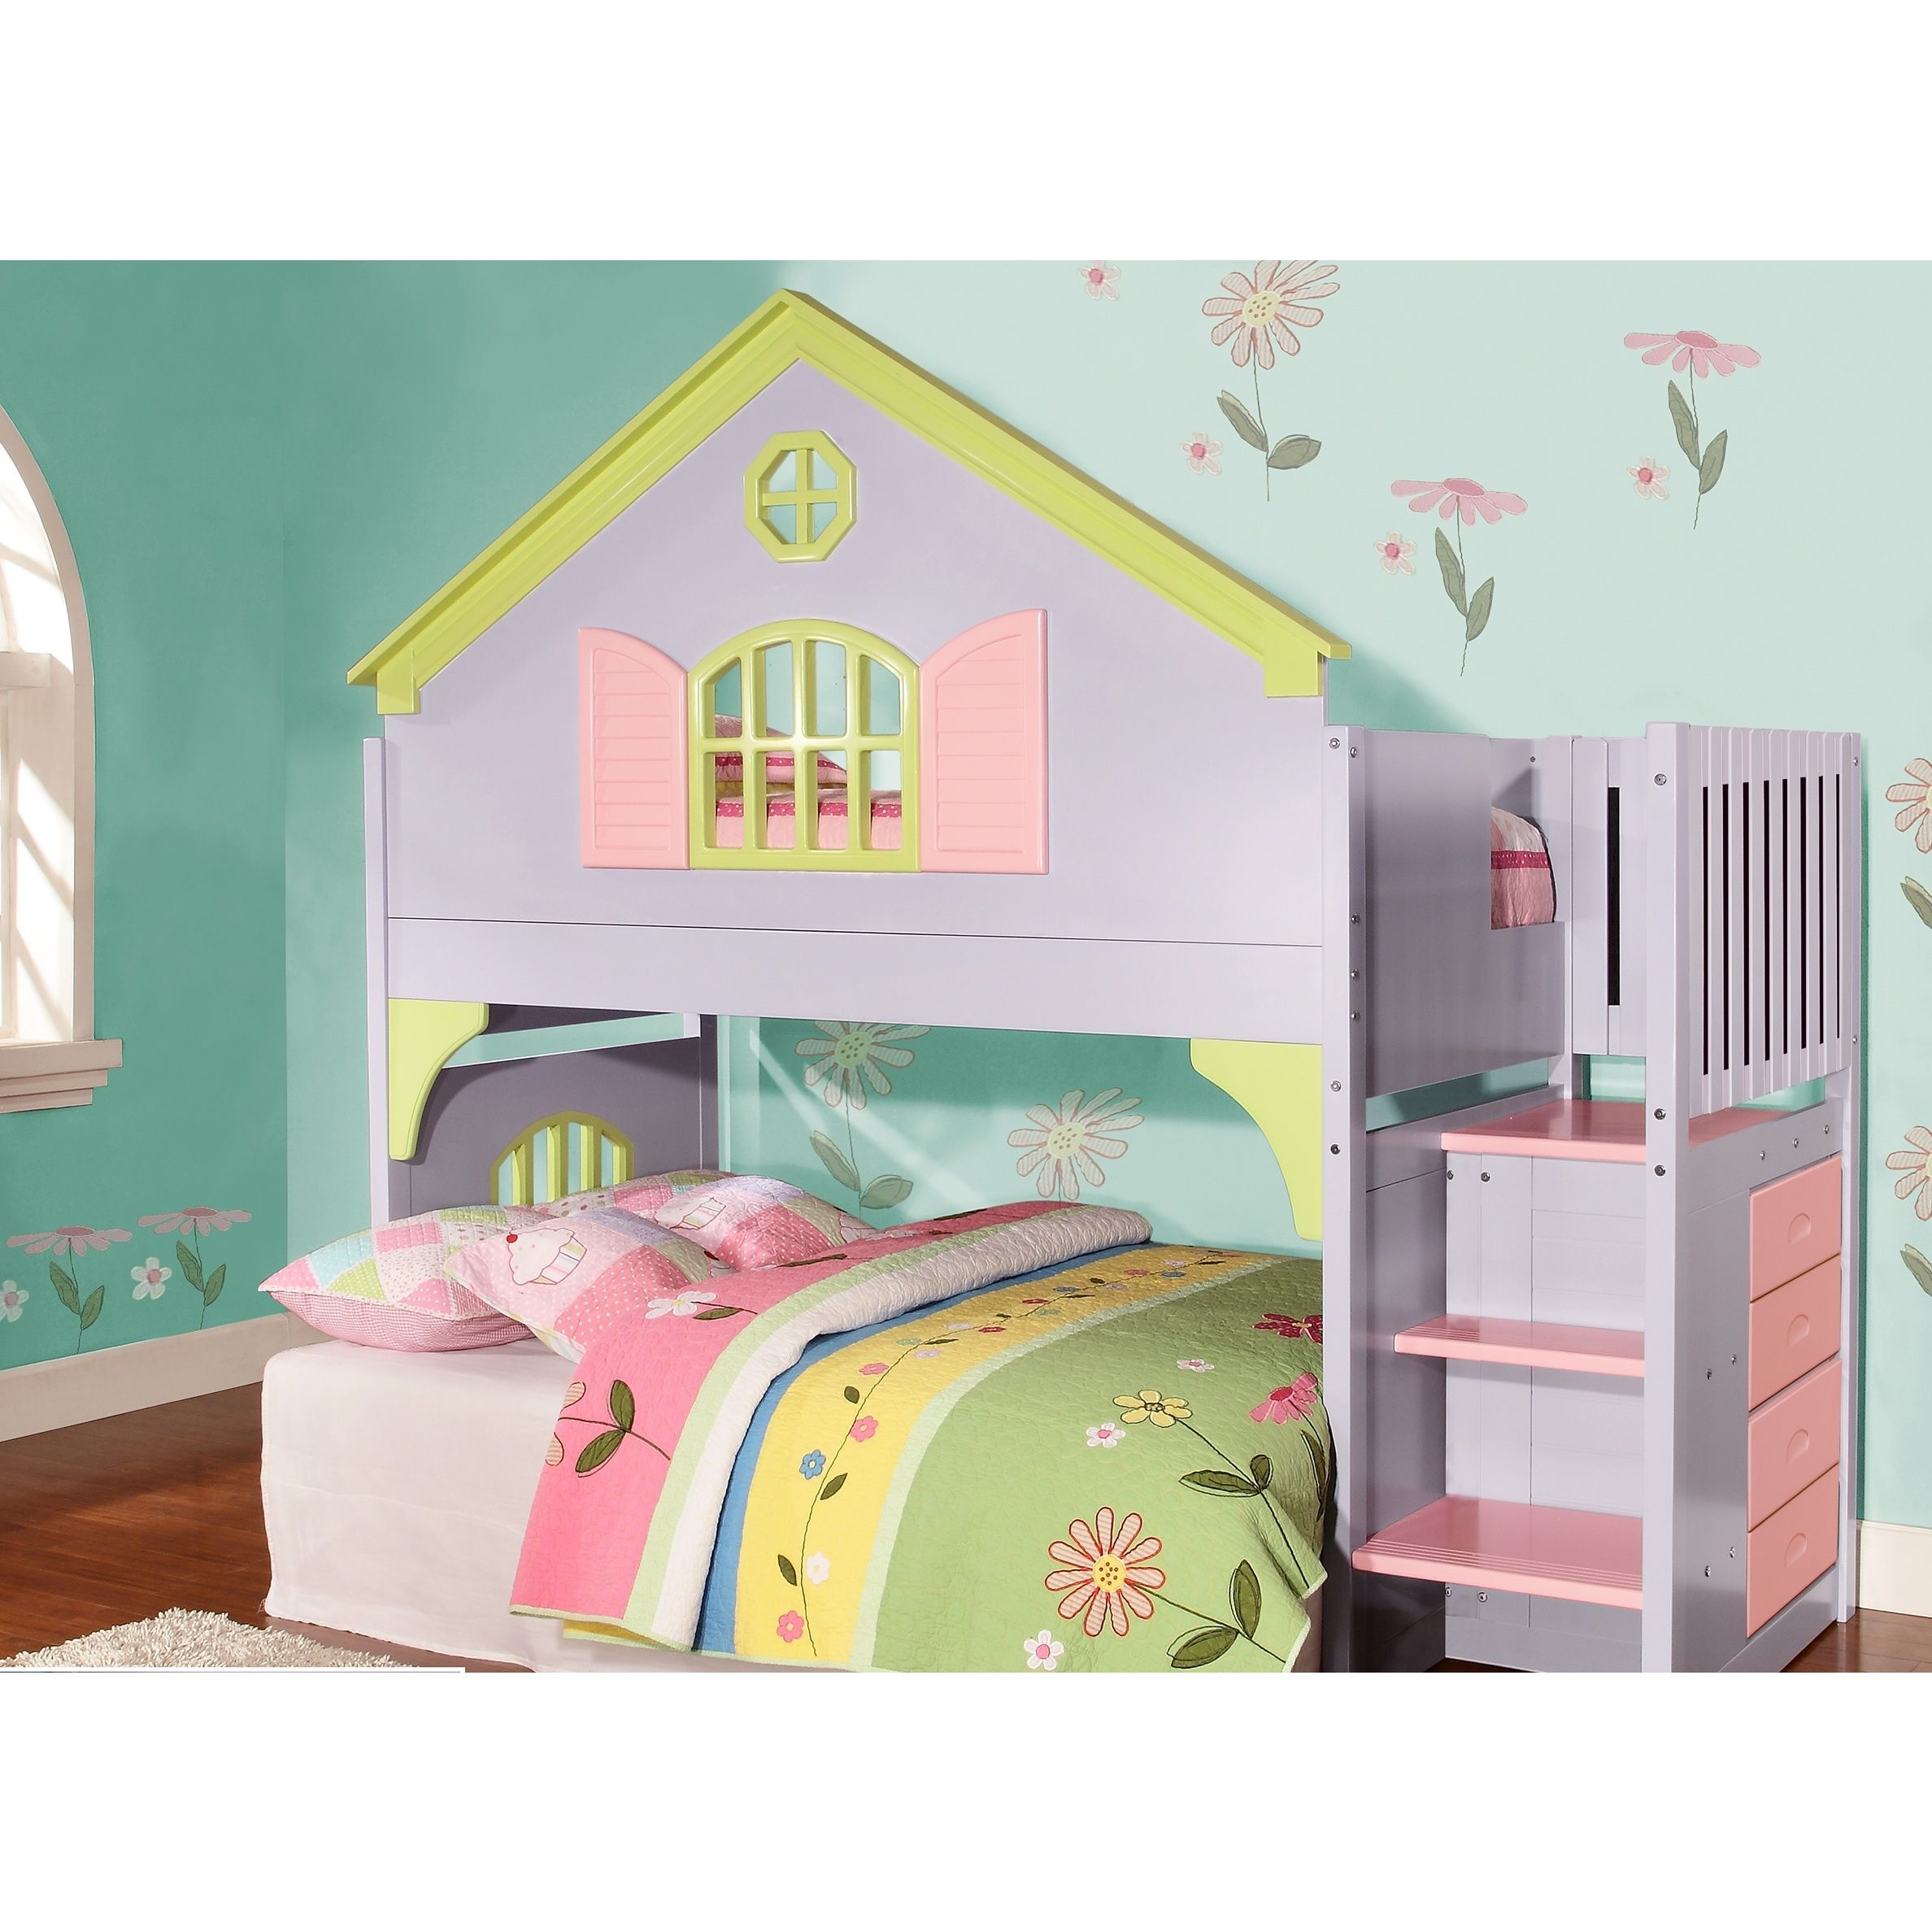 Whimsical Beds Donco Kids Twinsize Doll House Stair Step Loftdonco Kids